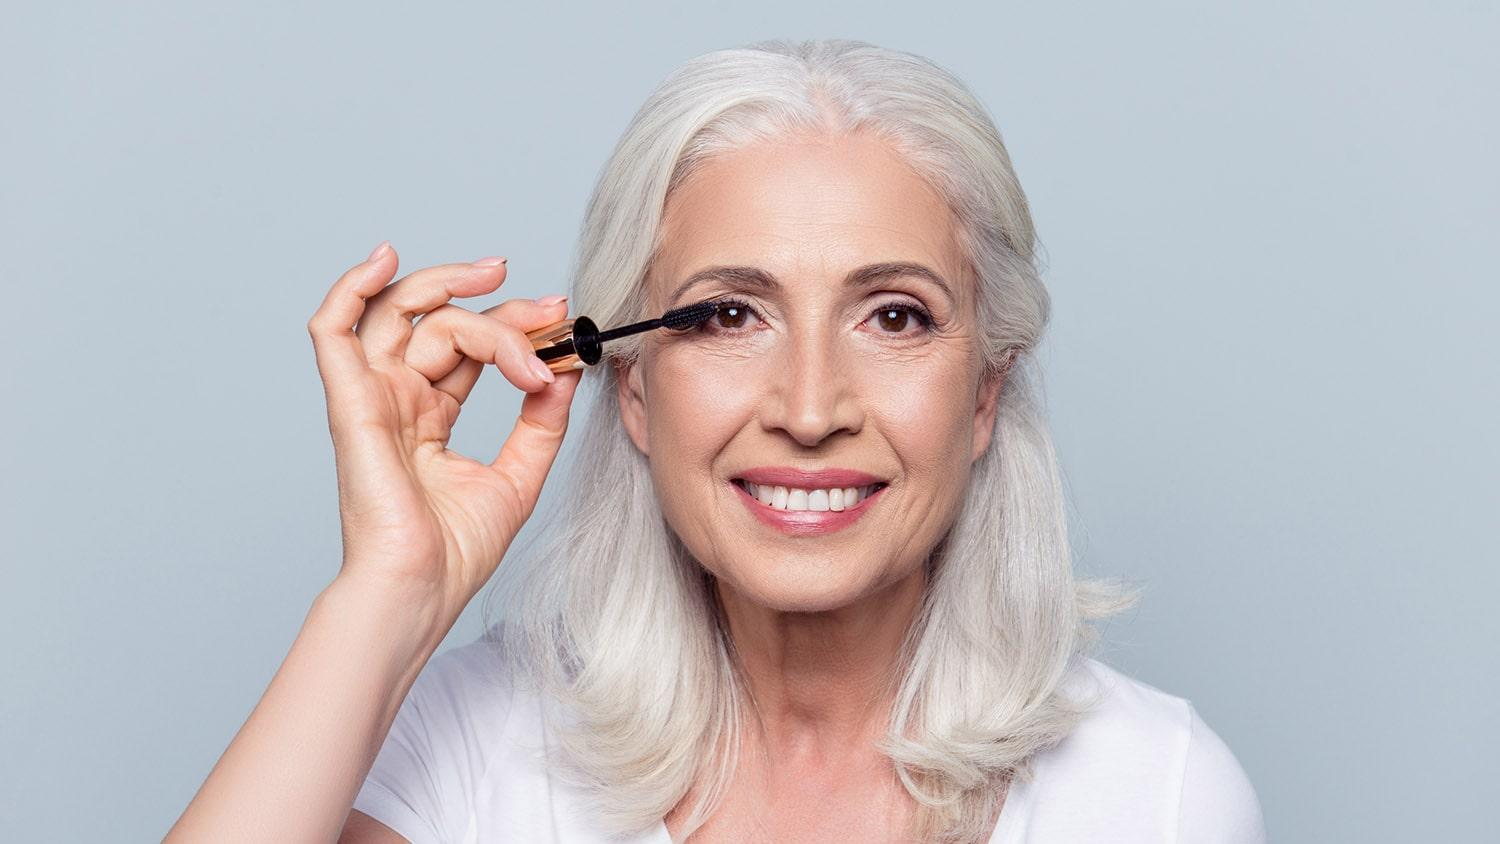 C:\Users\SUPRIYA\Downloads\Sixty-and-Me_4-Tiny-Makeup-for-Older-Women-Tips-That-Make-a-Big-Difference-min.jpg